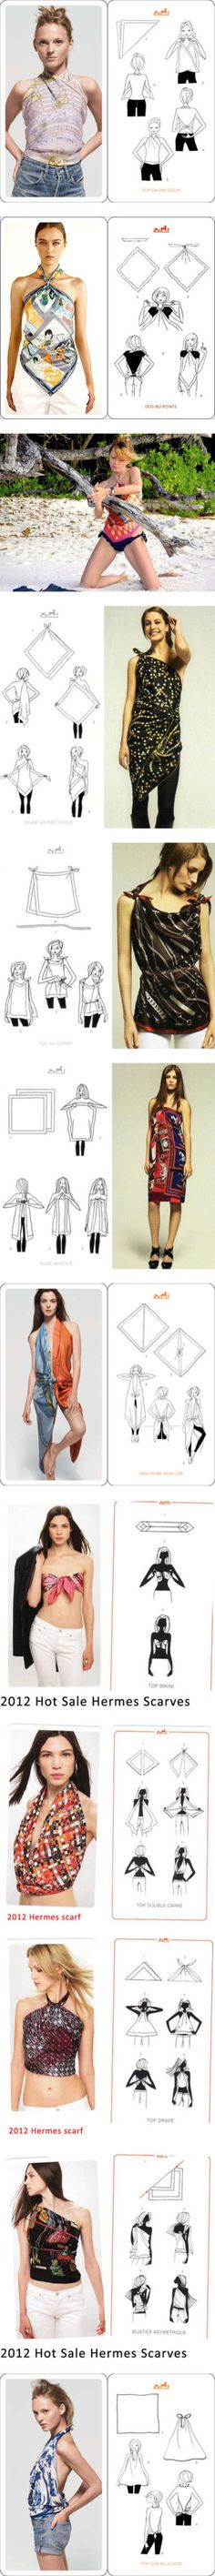 """18 ways to tie Sexy Hermes scarves tops and skirts"" by shoeswithredsoles ❤ liked on Polyvore"